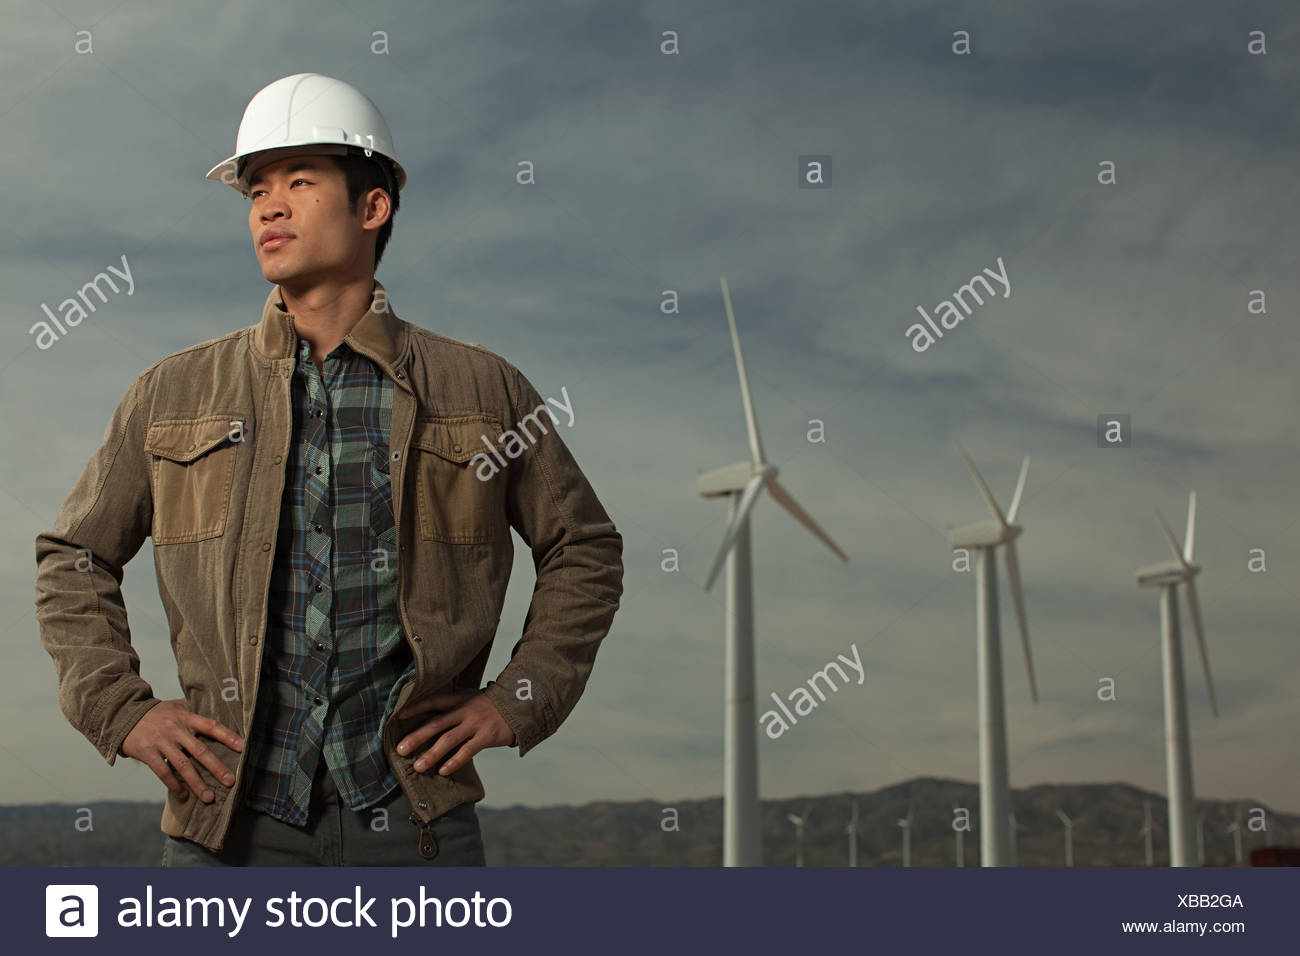 Engineer at a wind farm Stock Photo